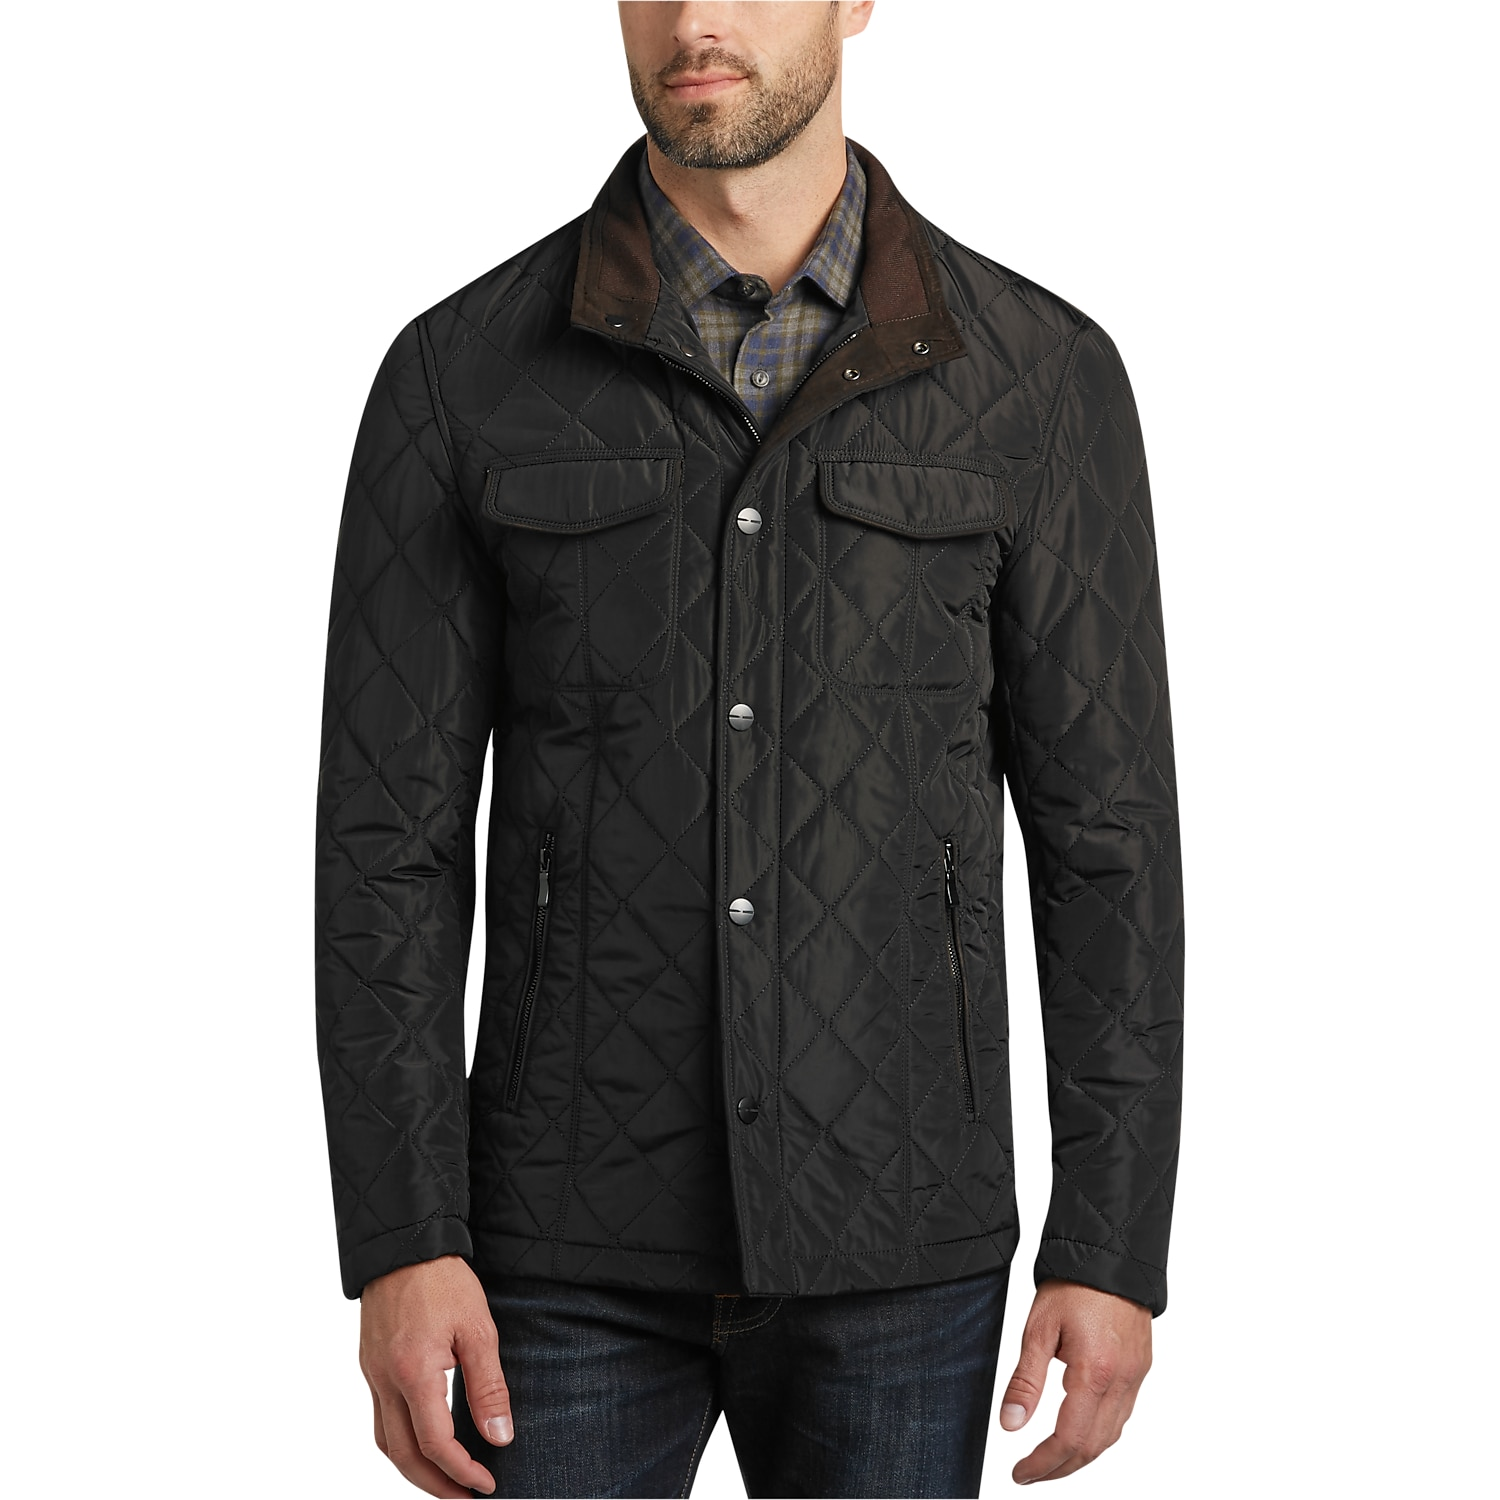 Men's casual jackets sale